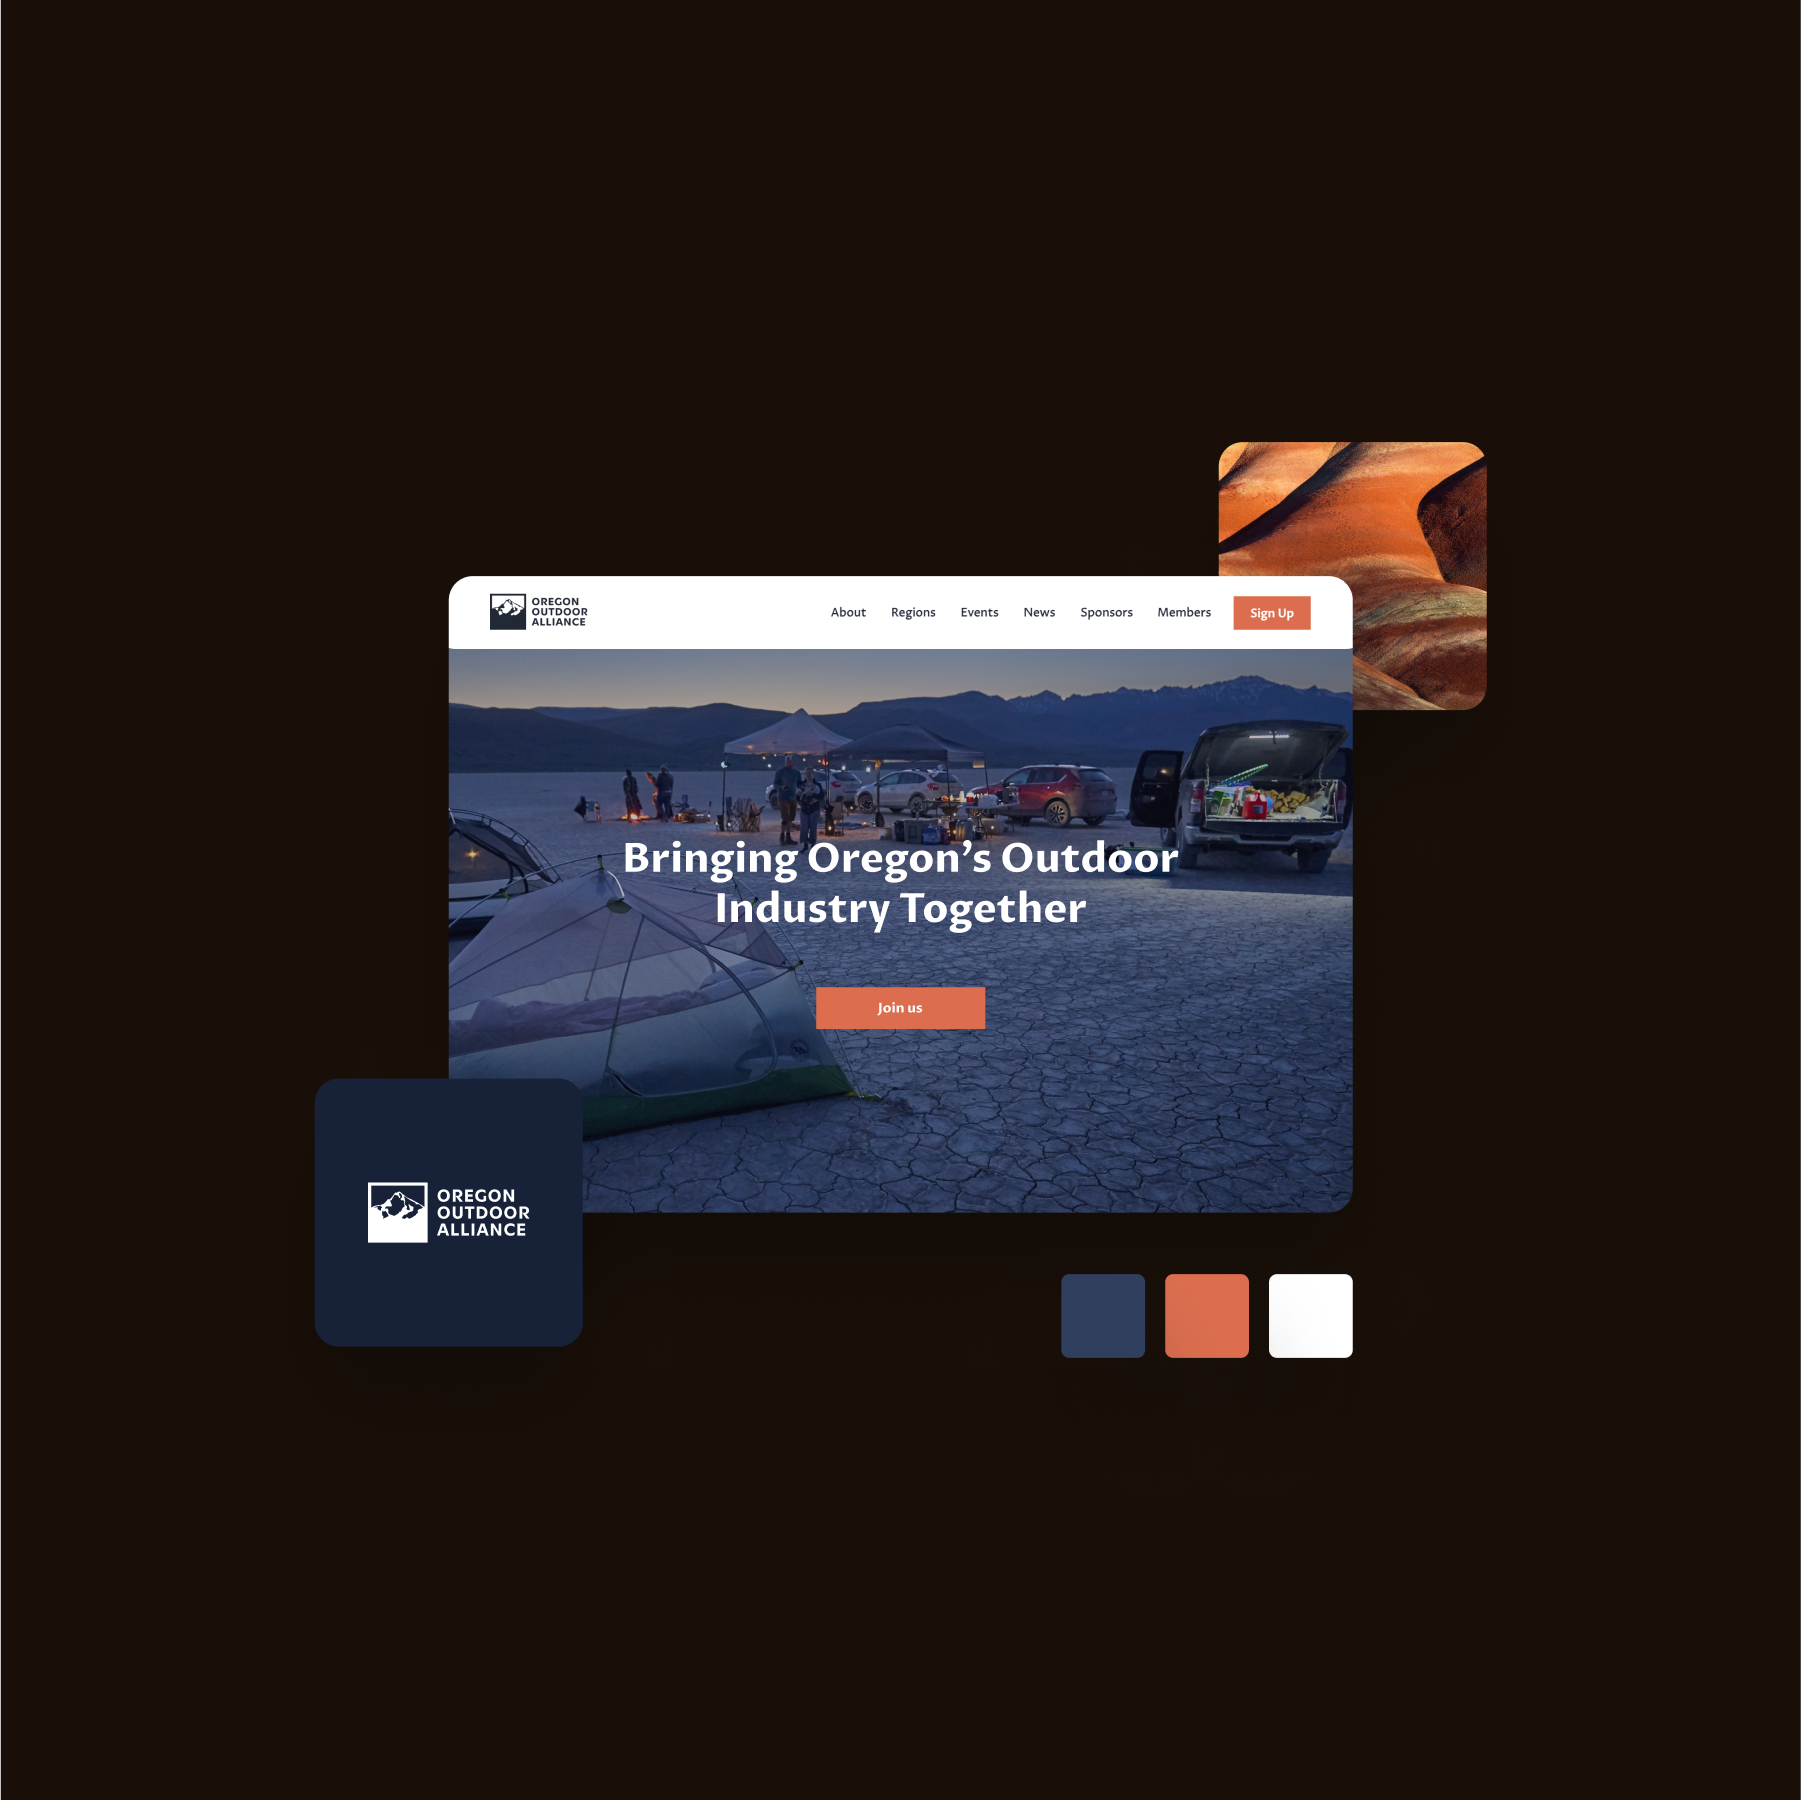 On a black background, an image of the Oregon Outdoor Alliance website, along with color palette and accent images, including one of the Painted Hills, orange and yellow covered in shadow, in Oregon, USA